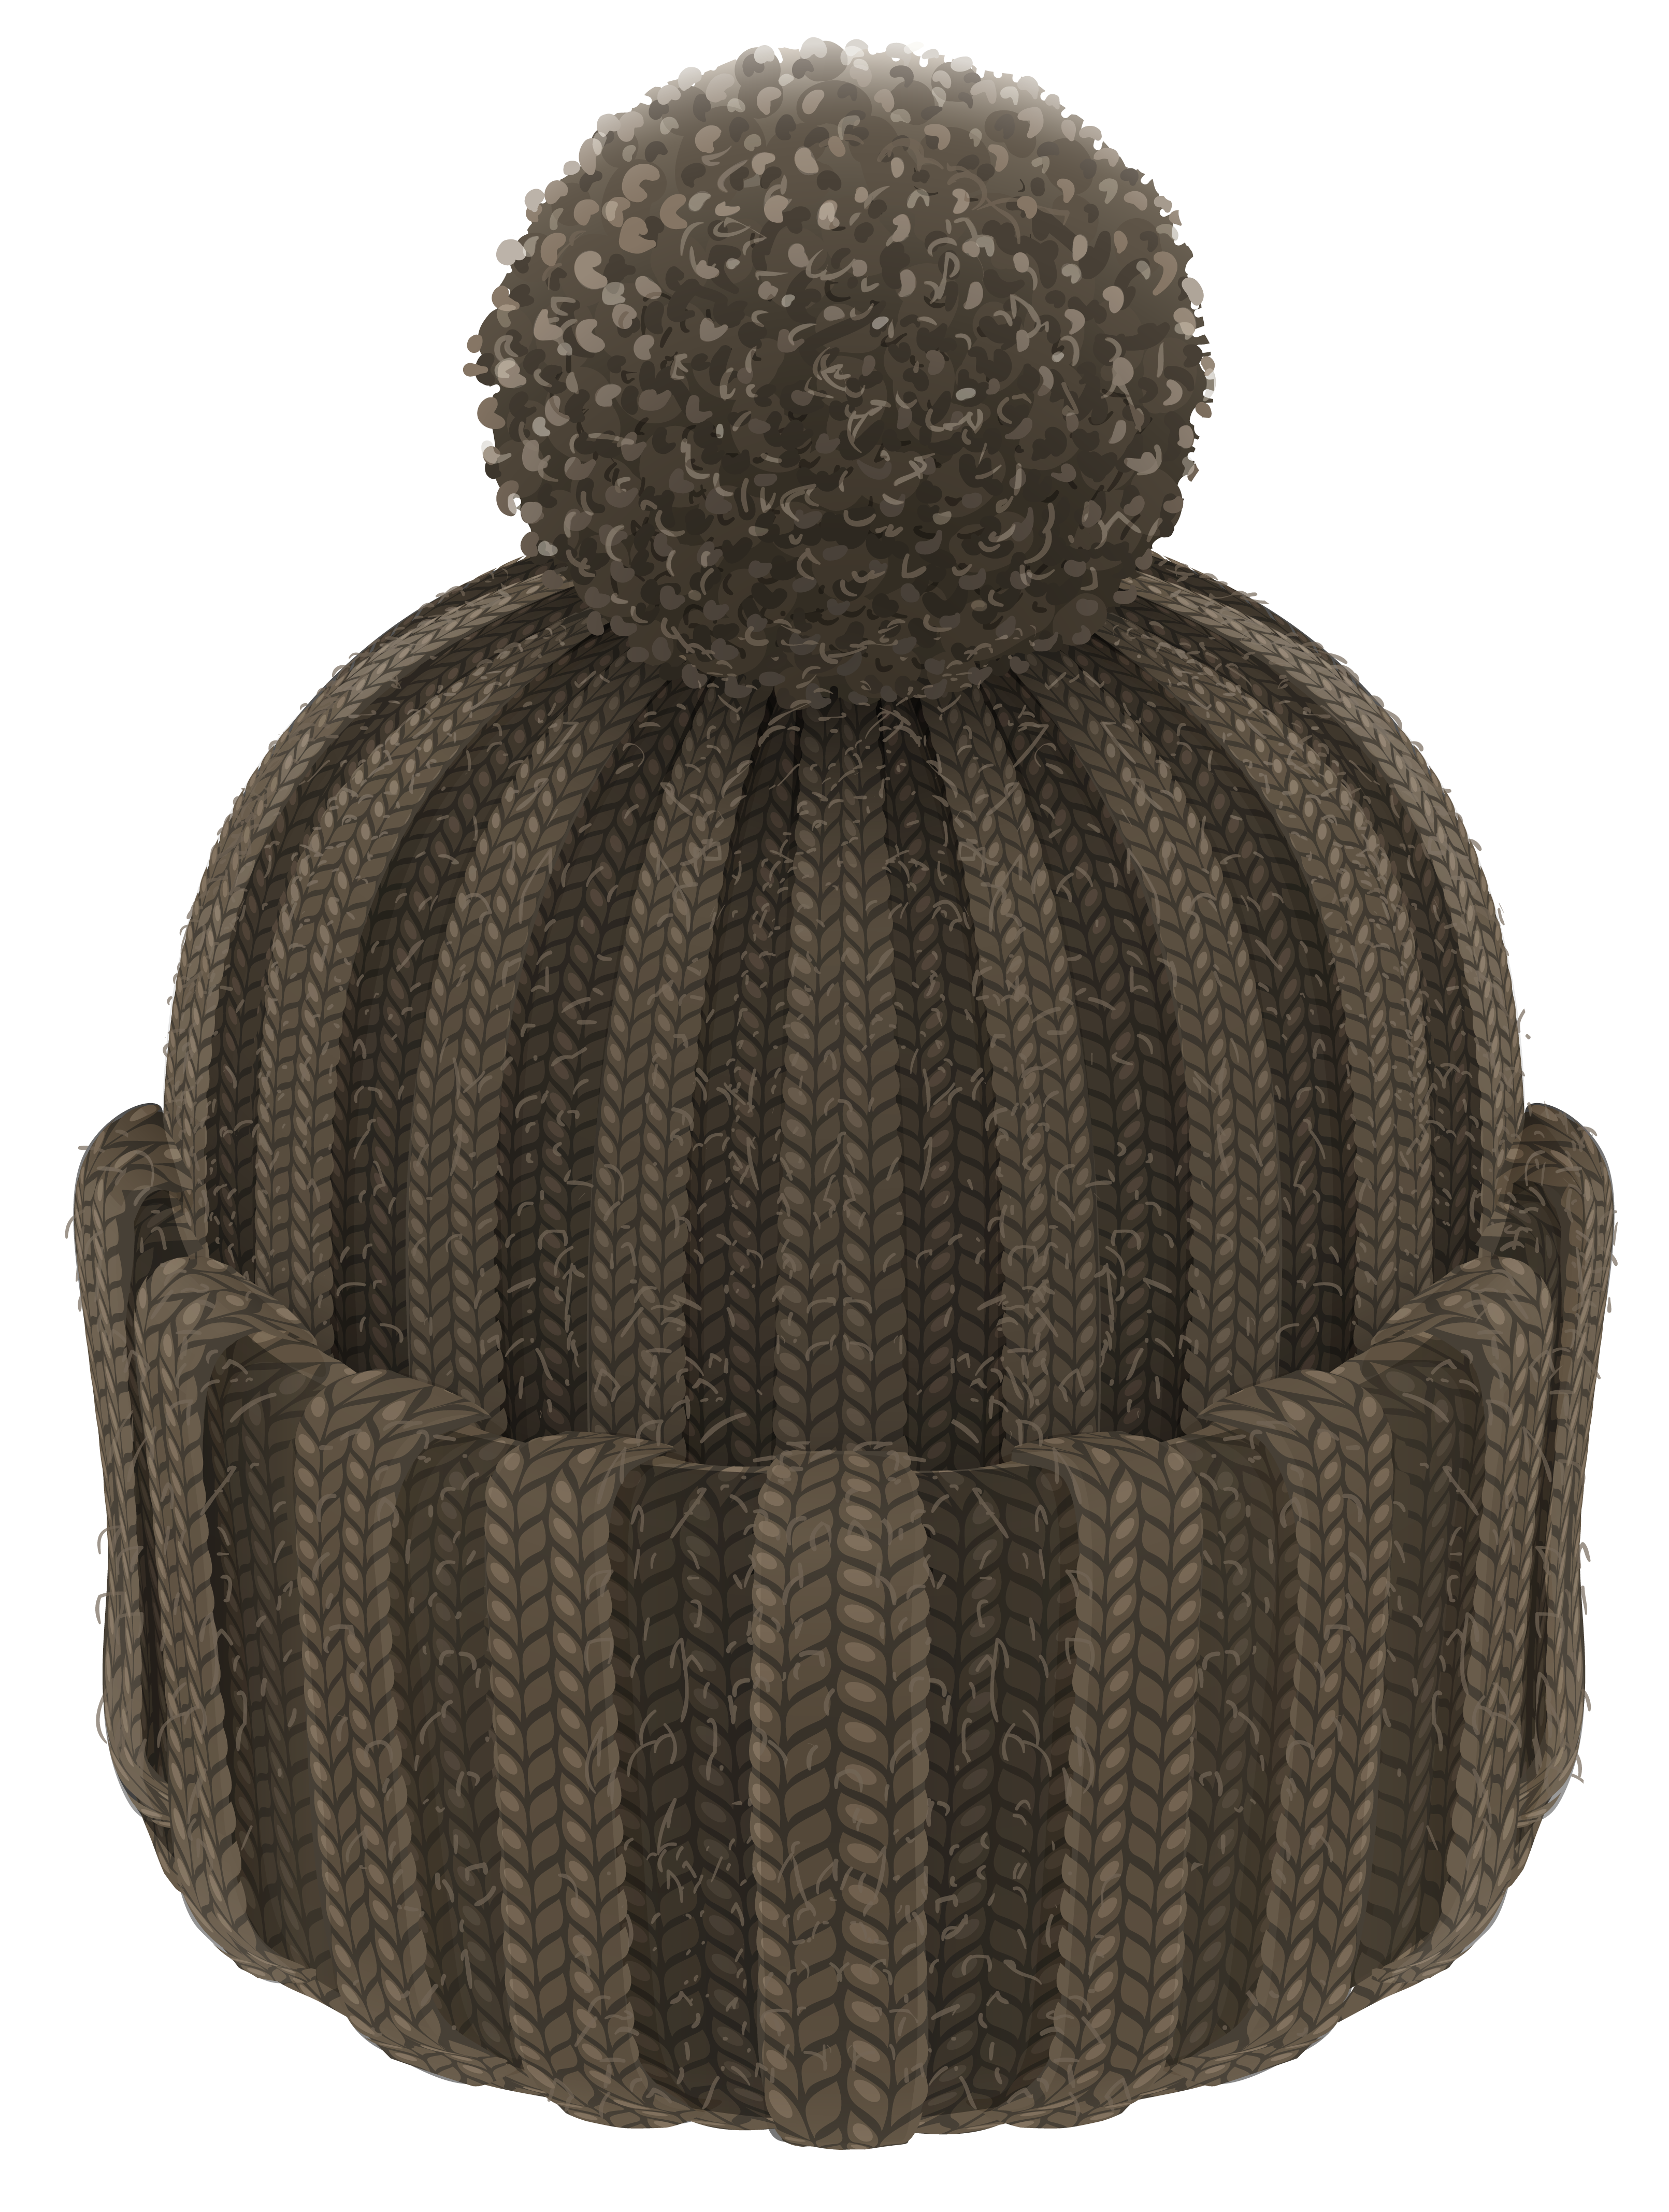 banner free Beanie transparent background. Pom hat png clipart